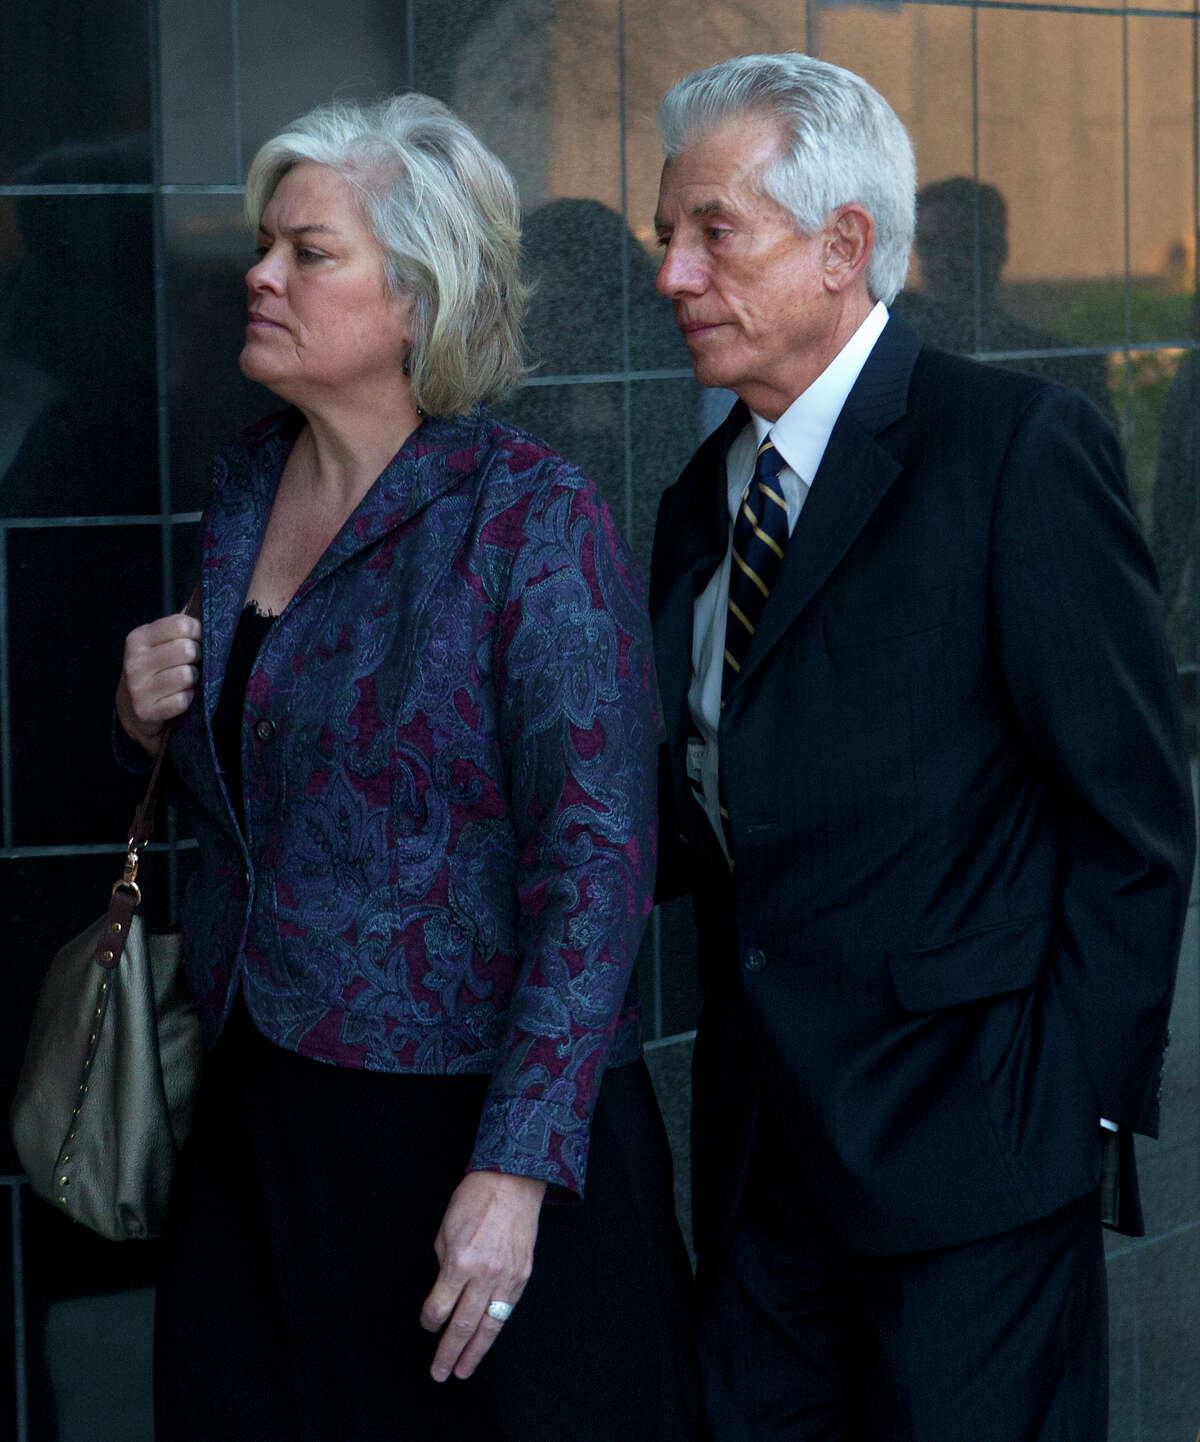 James Davis, right, enters the Federal Courthouse with his wife, Lori, Tuesday, Jan. 22, 2013, in Houston. Davis, who testified against Allen Stanford, will receive his sentence today. He could face up to th 30 years for his role in one of the biggest Ponzi schemes in U.S. History.